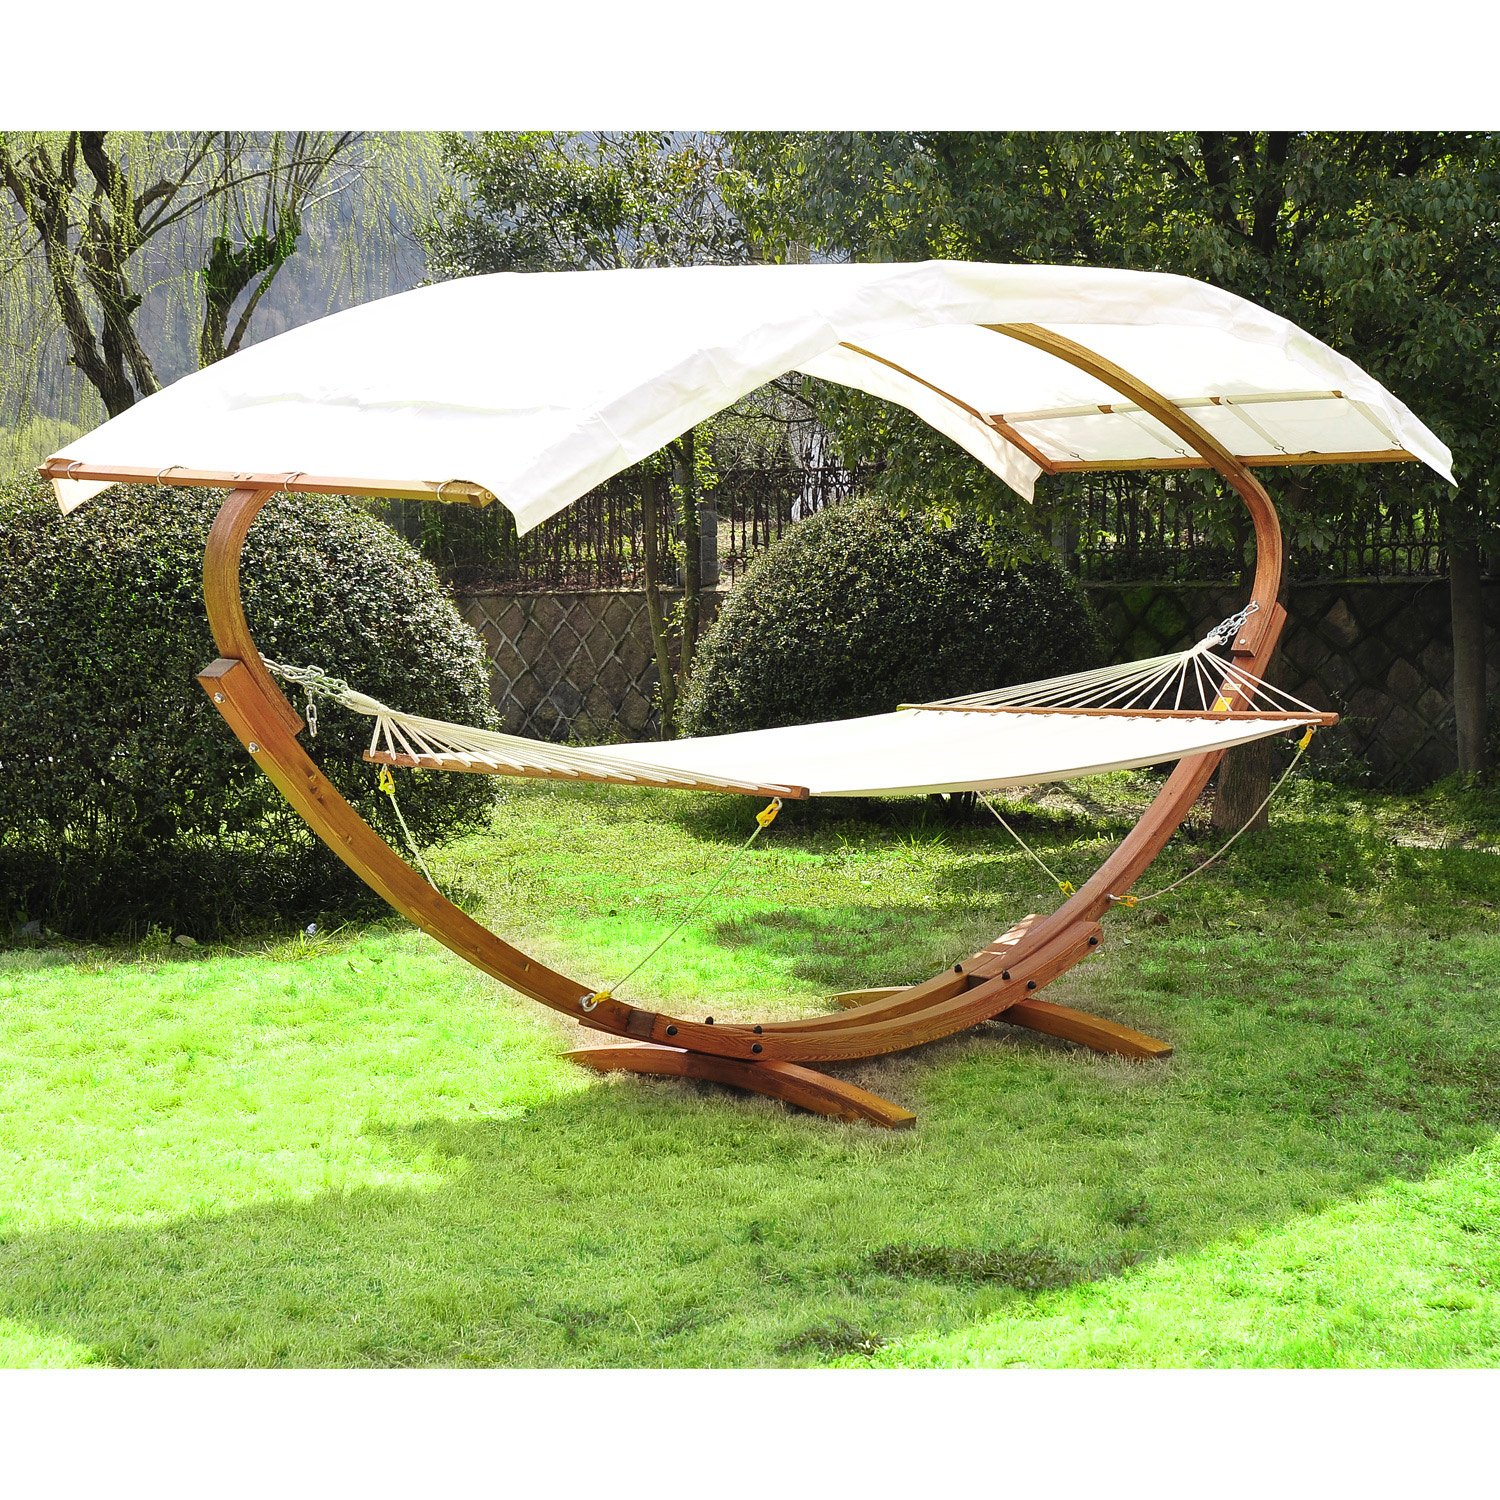 Outsunny 2-Person Wood Arc Outdoor Hammock & Stand Set with Canopy - Teak